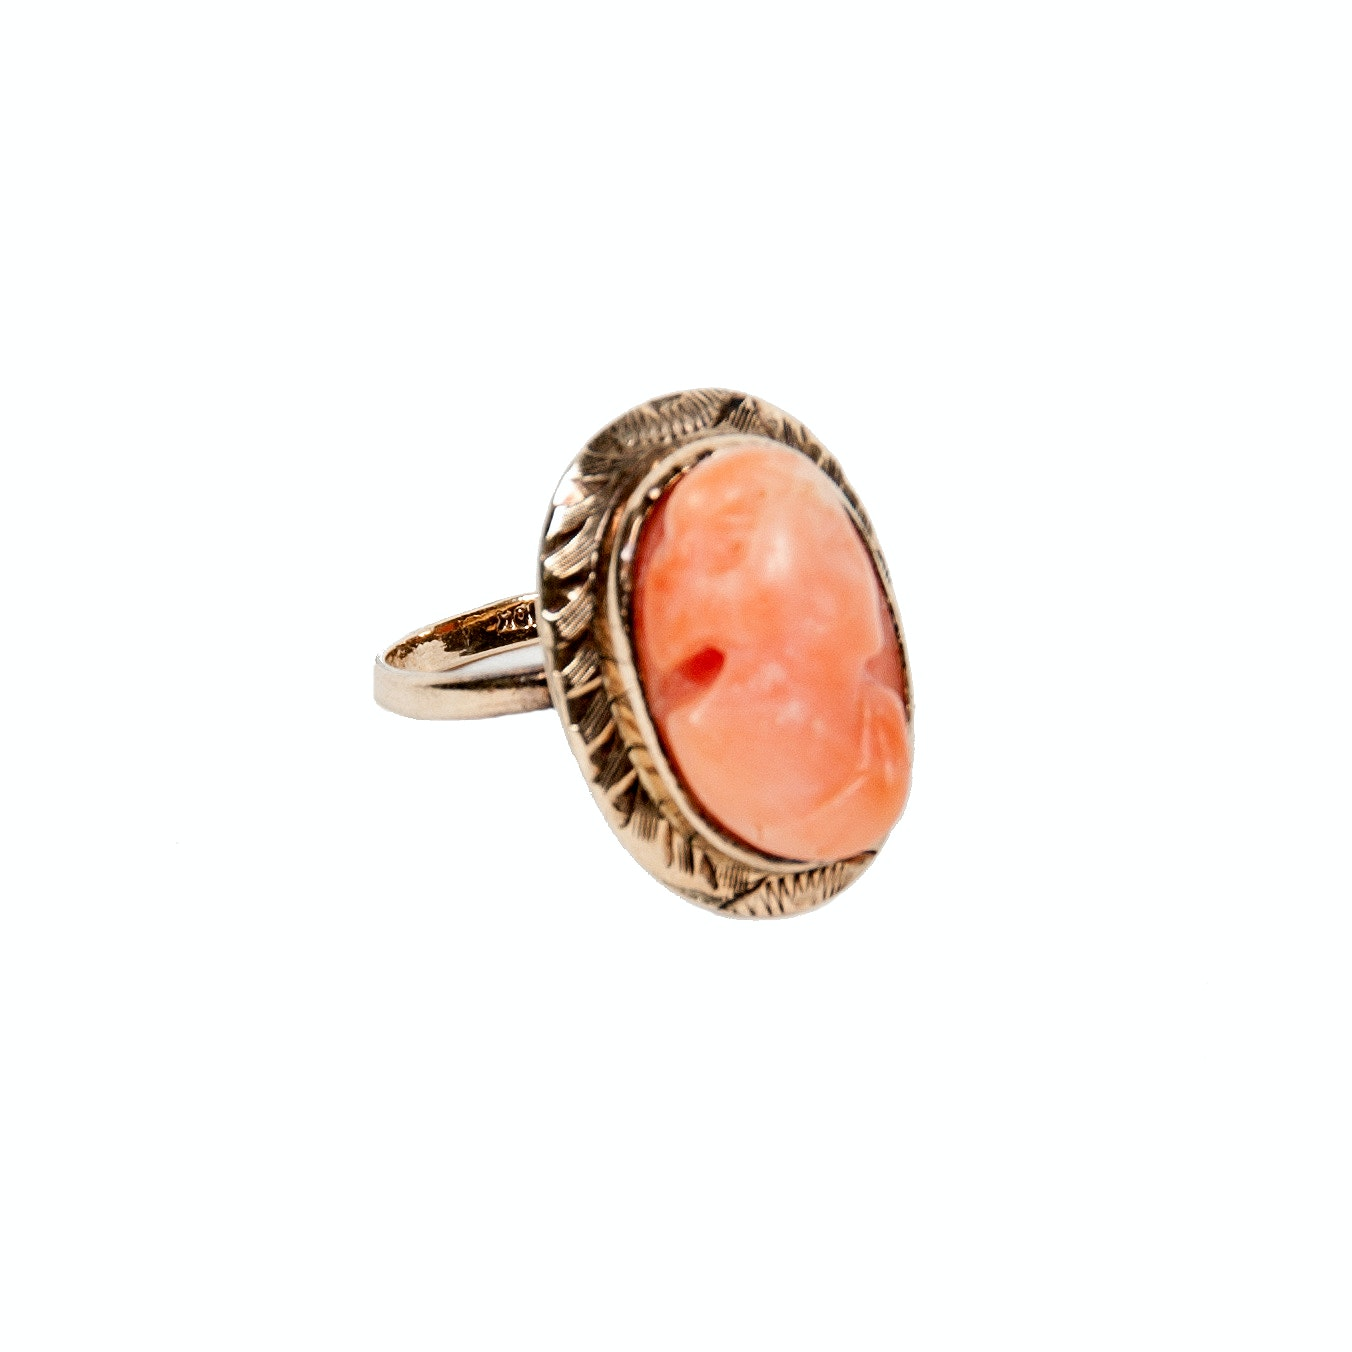 10K Yellow Gold and Coral Cameo Ring